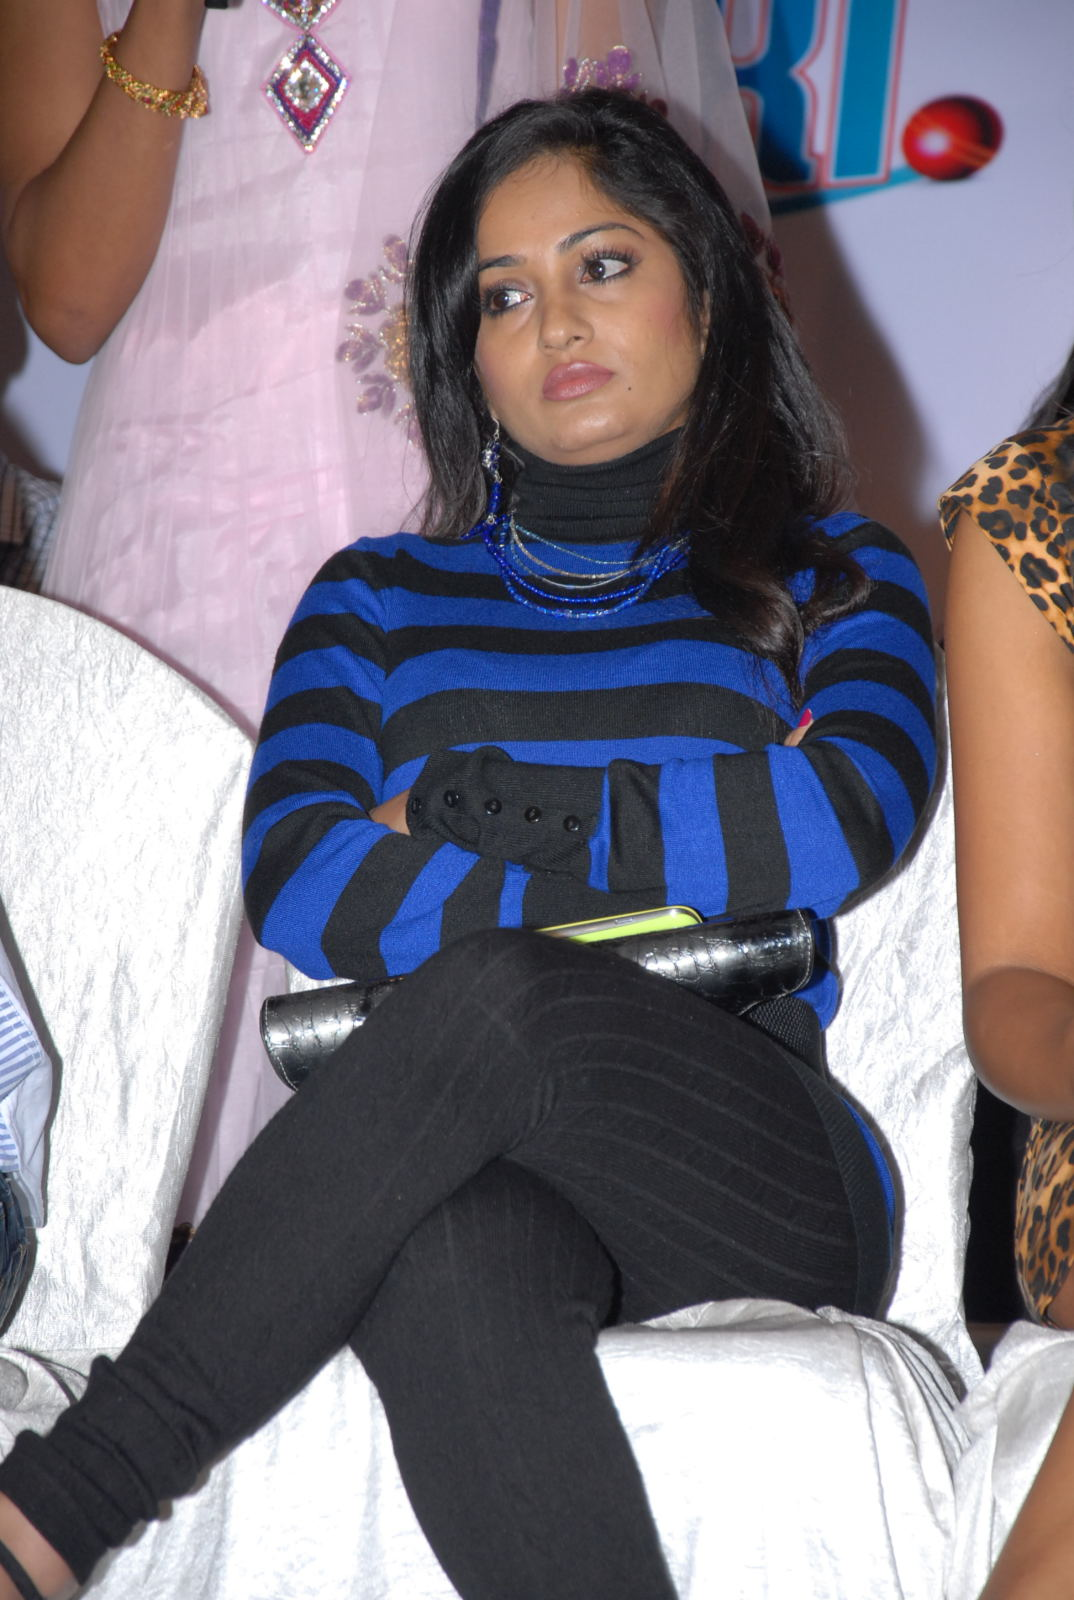 hot and sexy Madhavi latha photo gallery